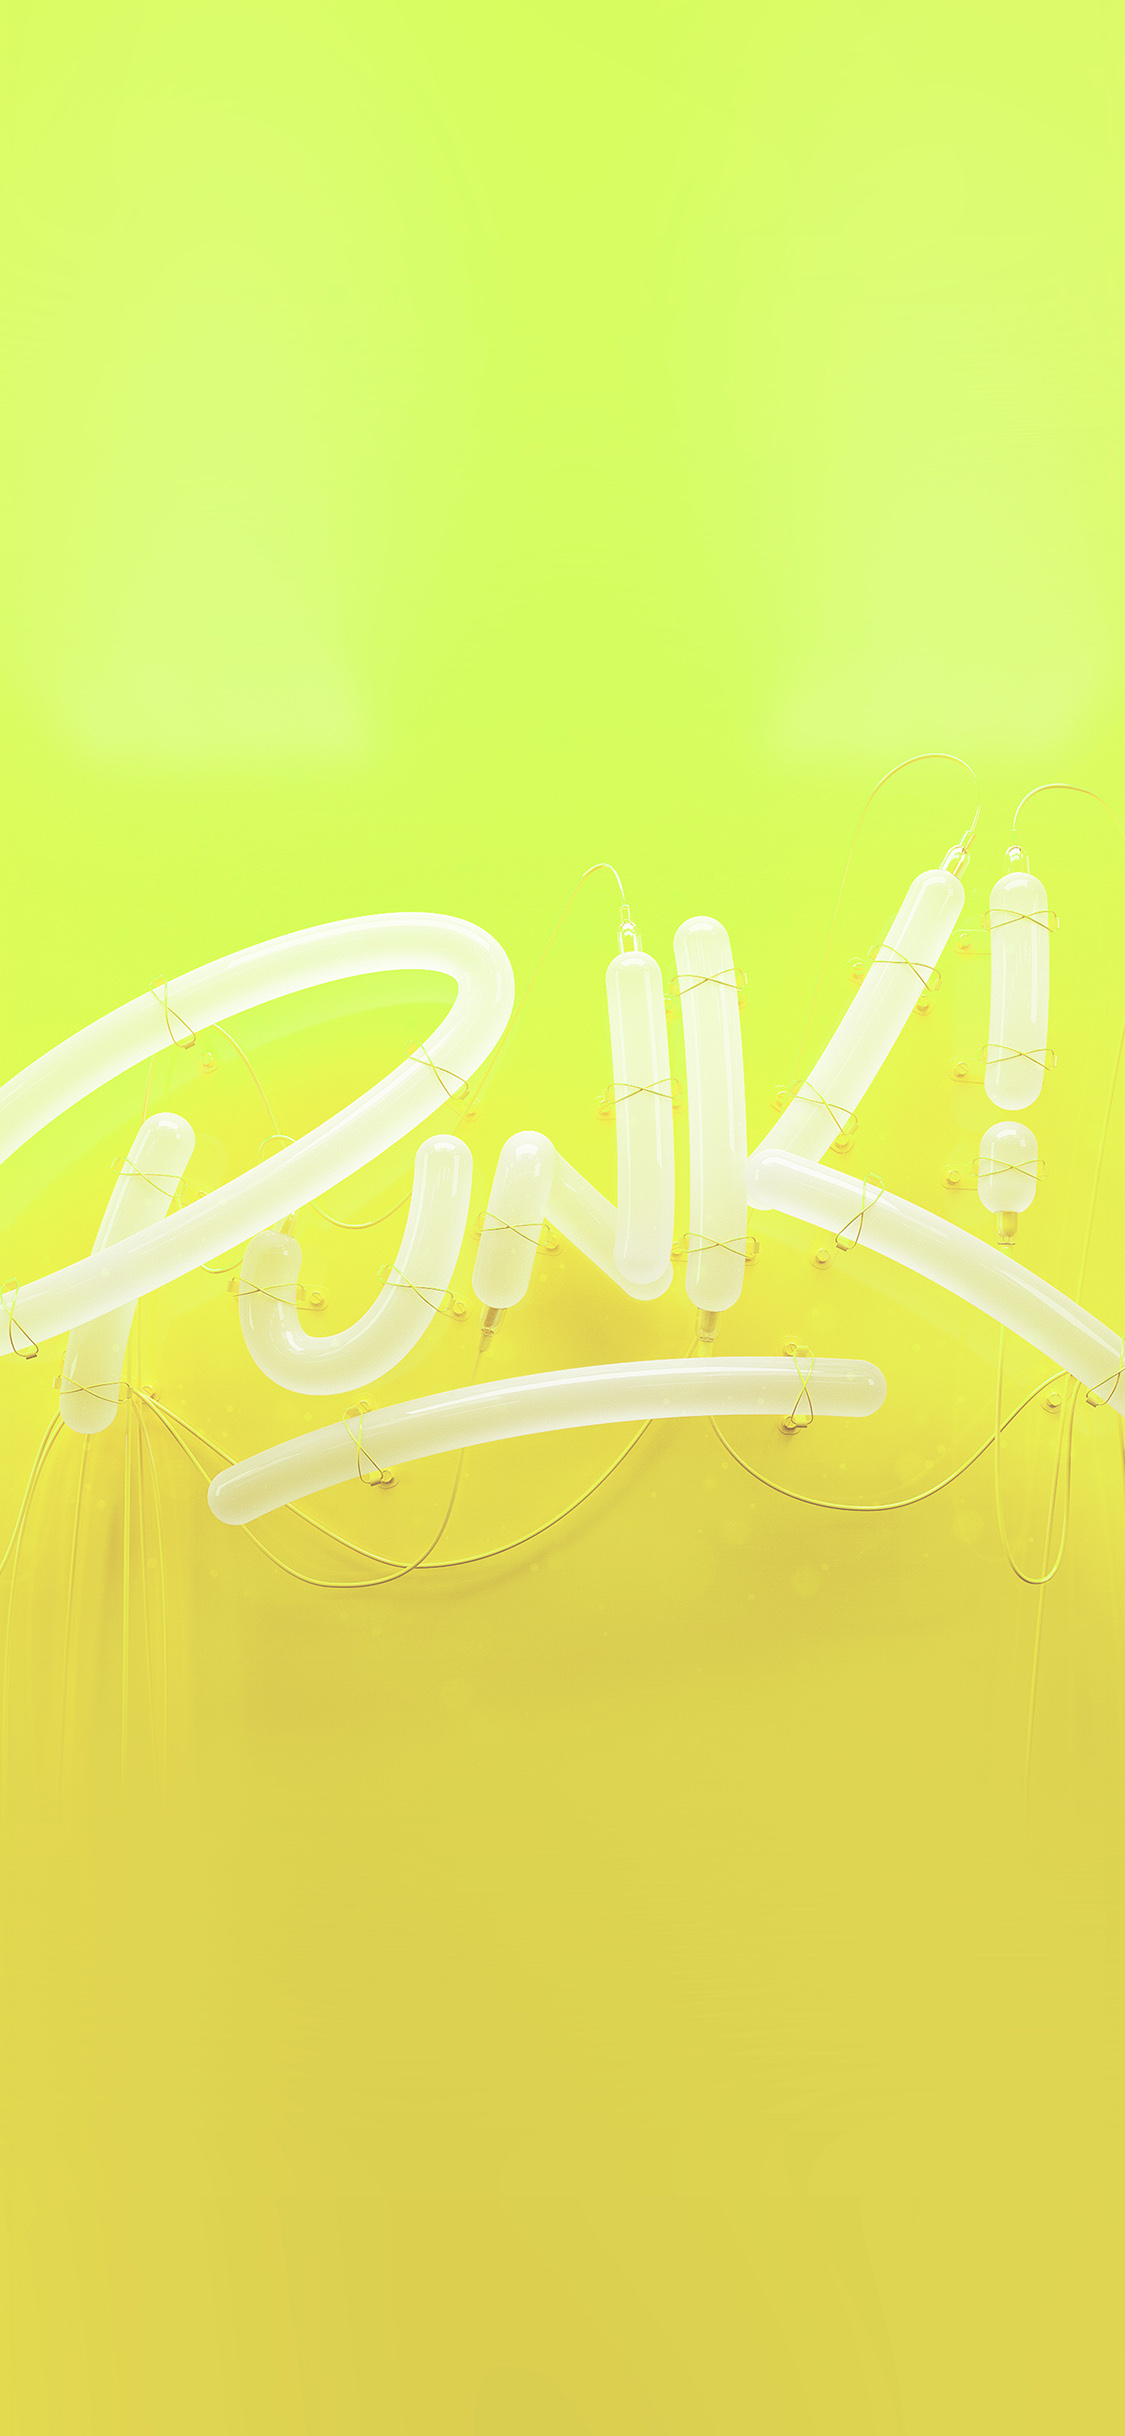 iPhonexpapers.com-Apple-iPhone-wallpaper-ay79-punk-neon-sign-art-minimal-illustration-art-yellow